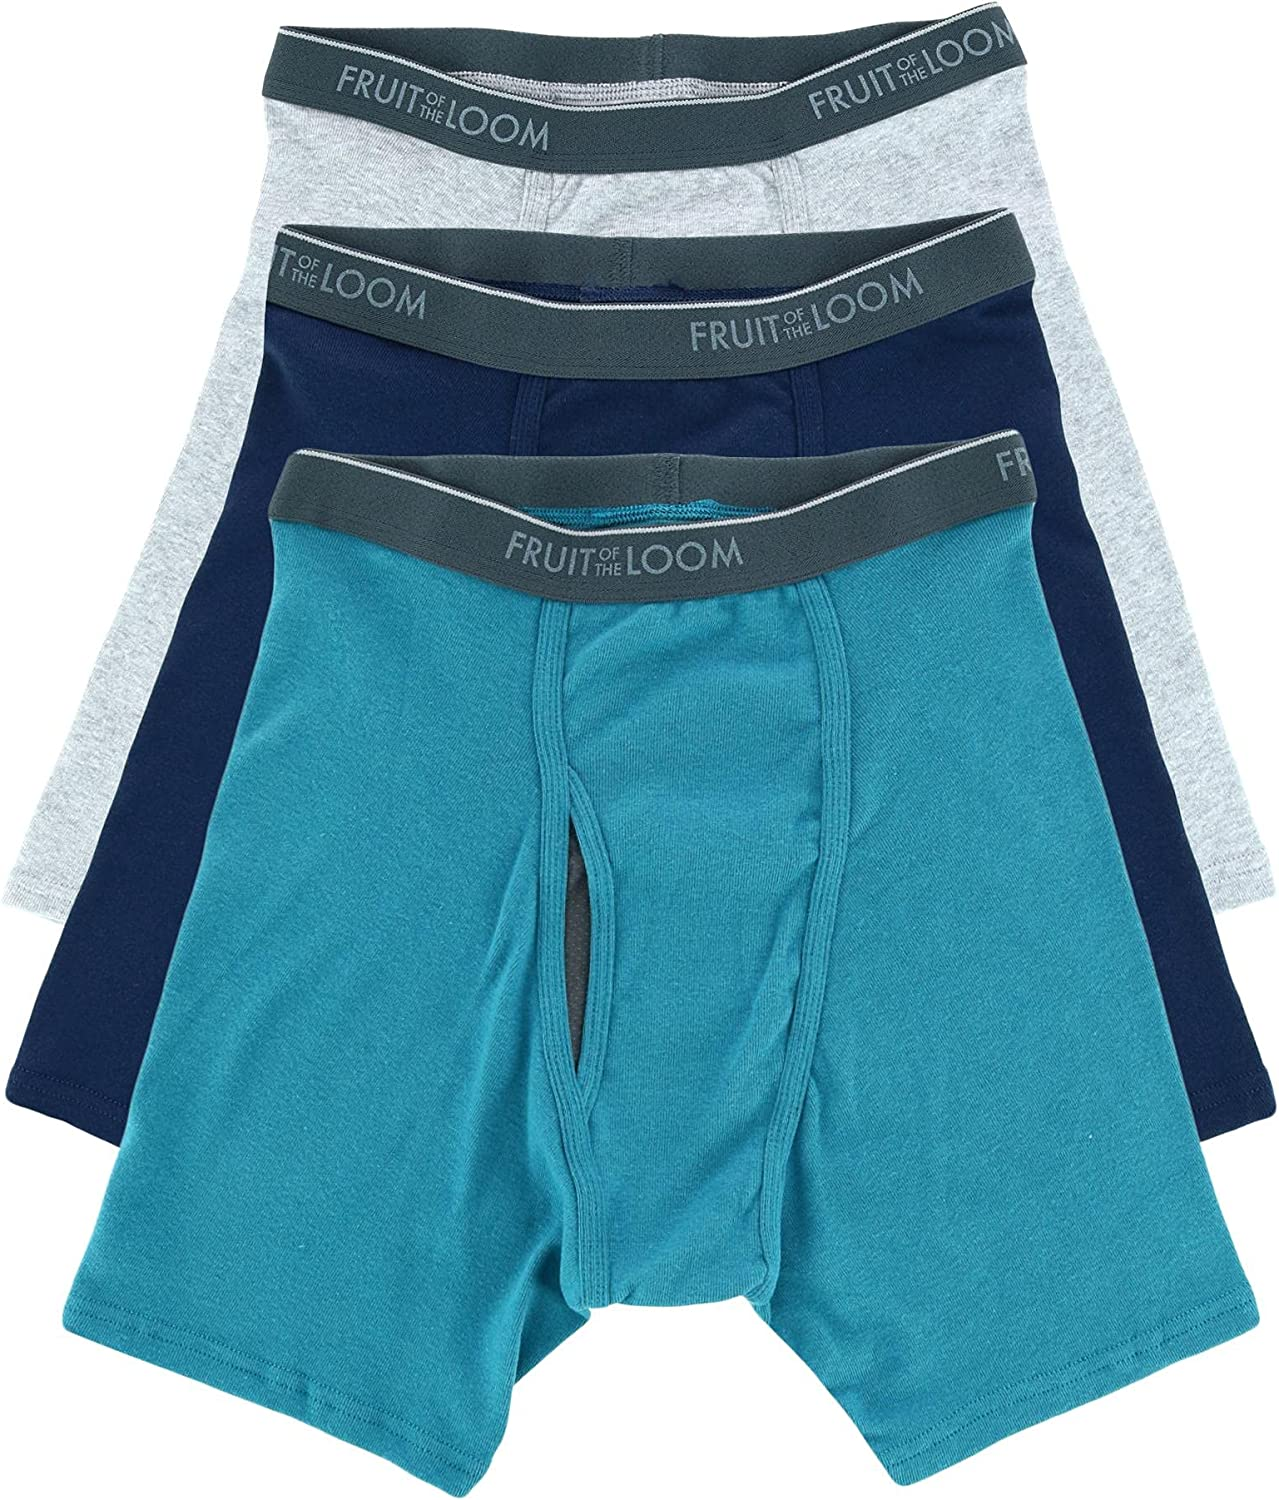 Fruit of the Loom Men's Coolzone Assorted Boxer Briefs - 3 Pack 3BL761C